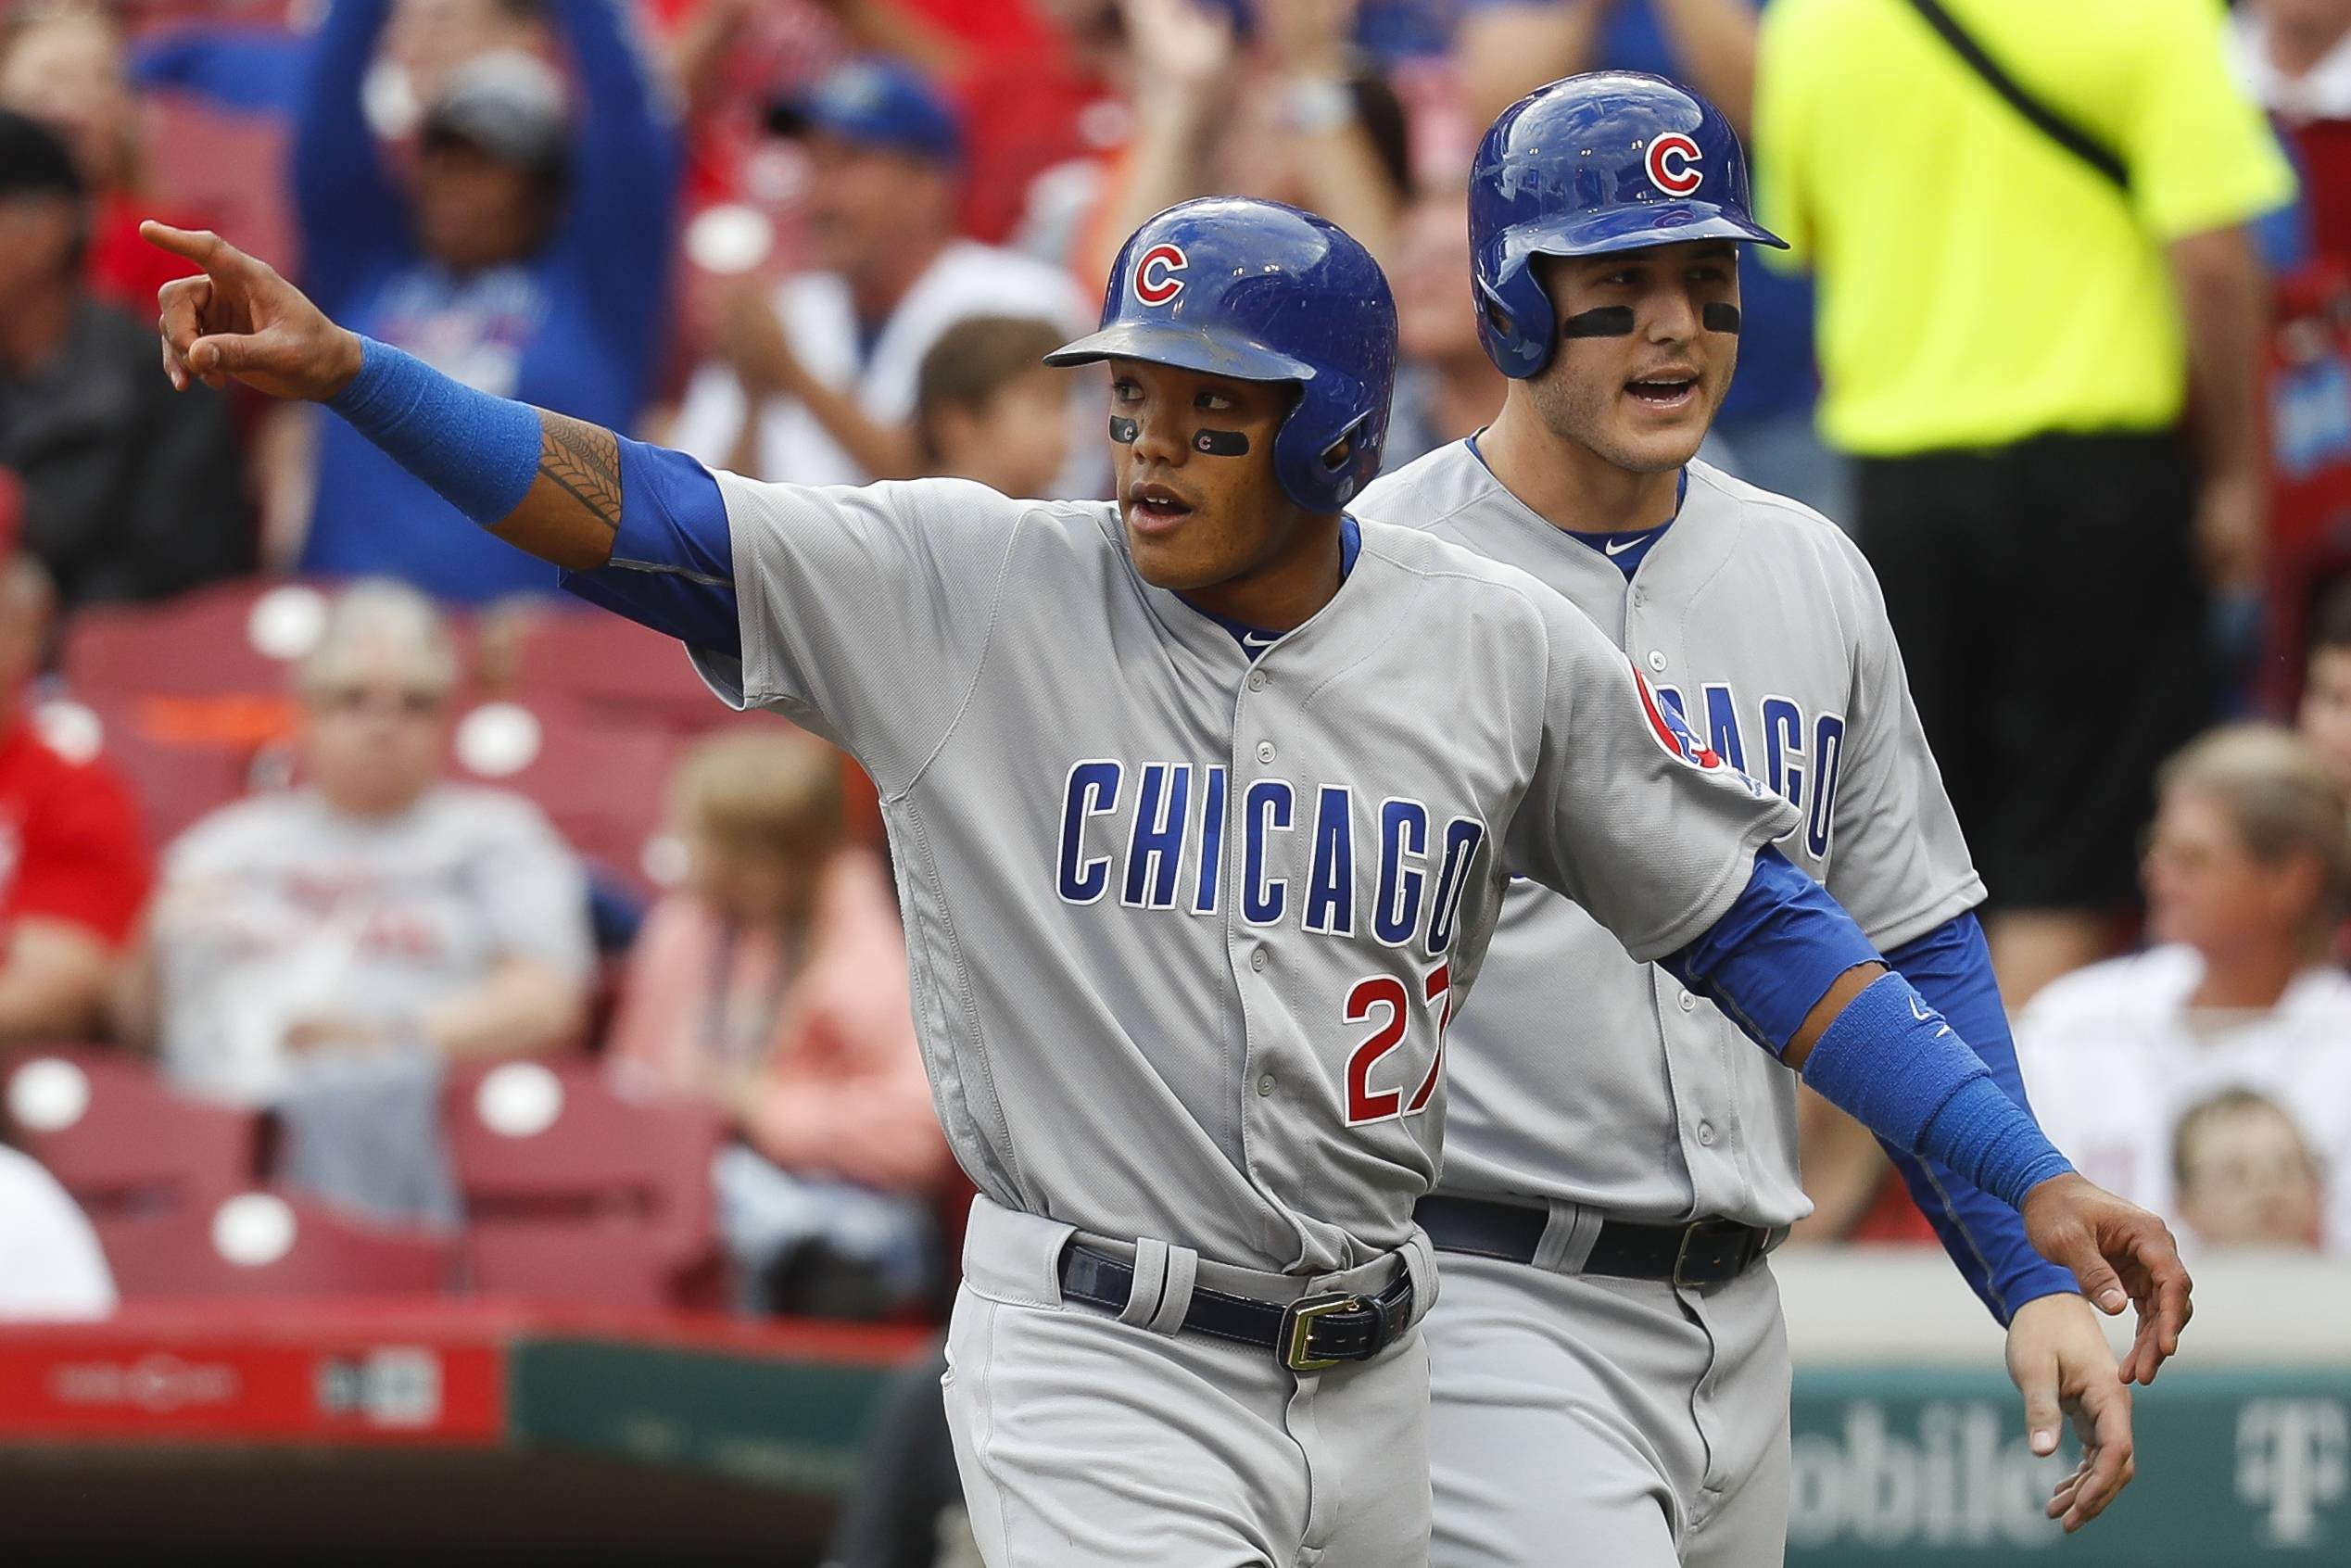 Associated Press File Photo Cubs shortstop Addison Russell, left, celebrates with Anthony Rizzo, after scoring during an October 2016 game. The young players on the Chicago Cubs have grown up. They're still young, but they are veterans now.